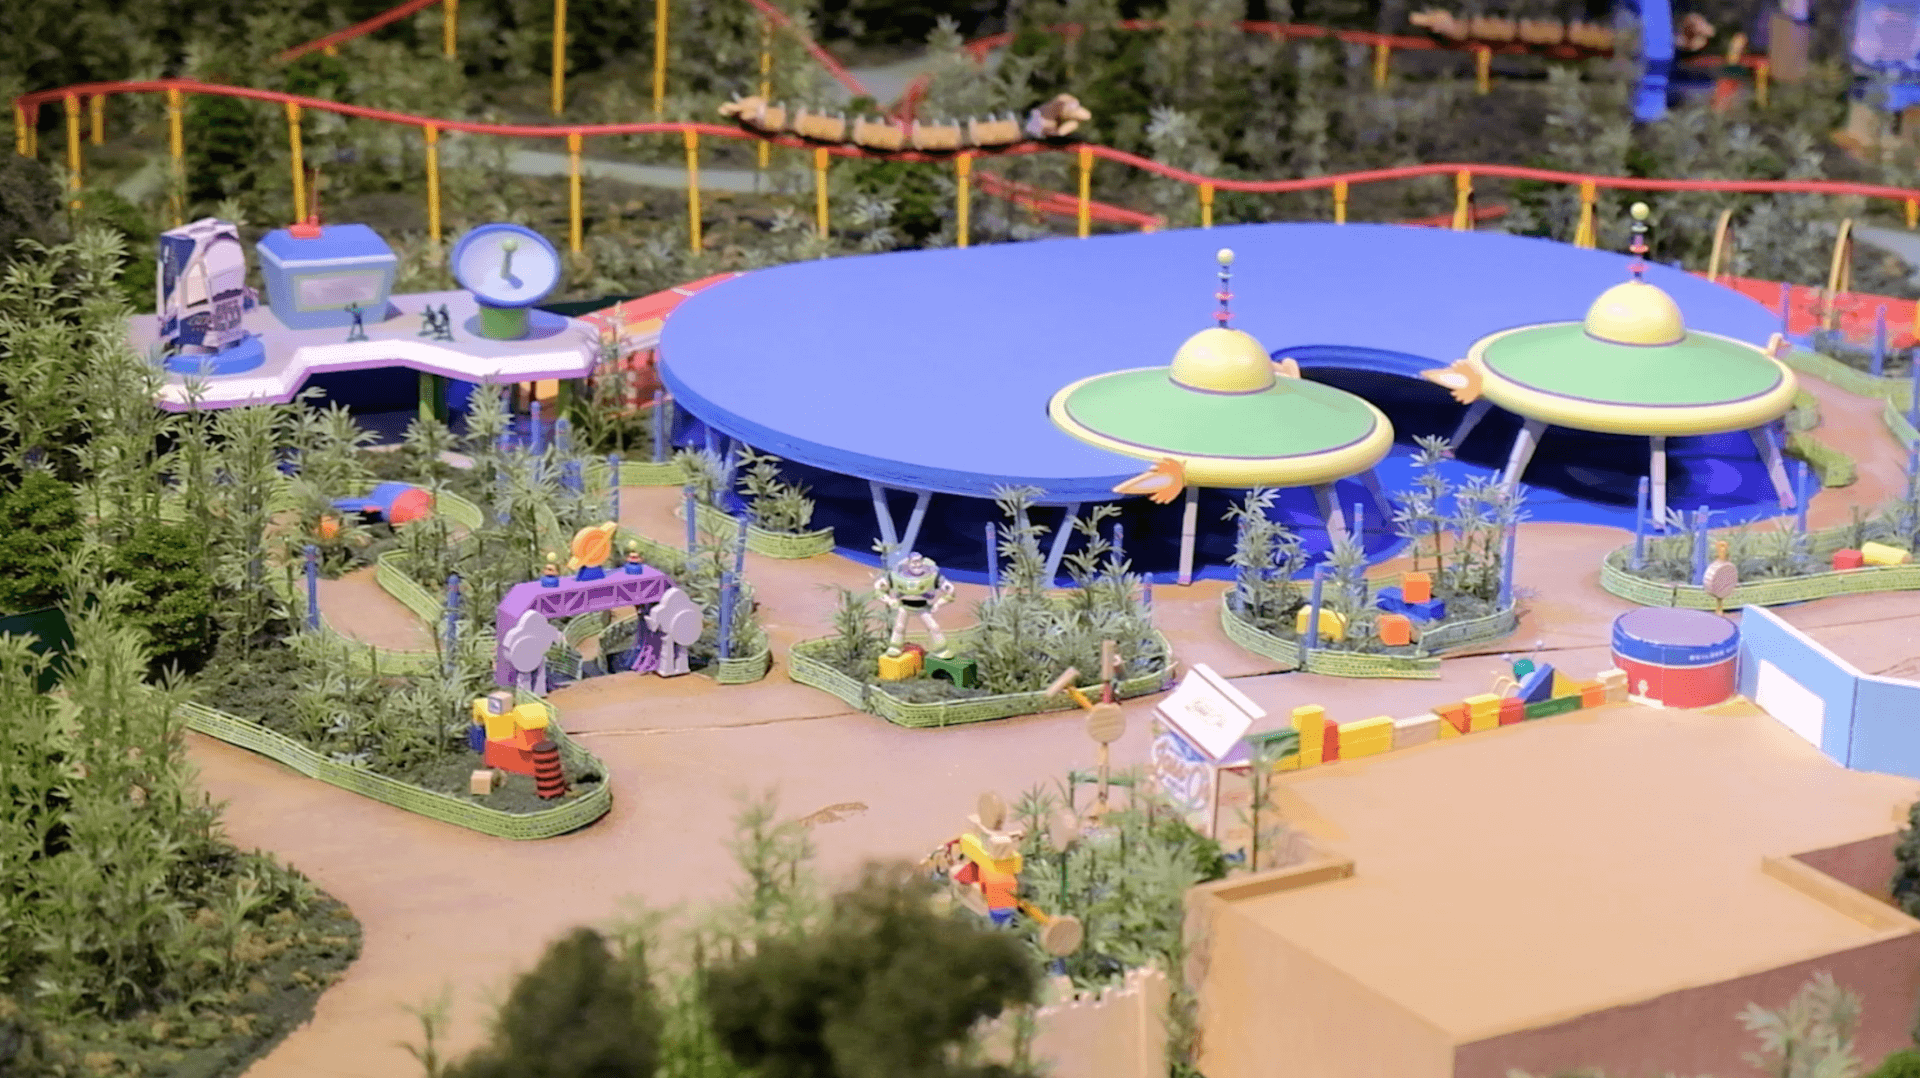 toy story land model now on display at walt disney world revealing